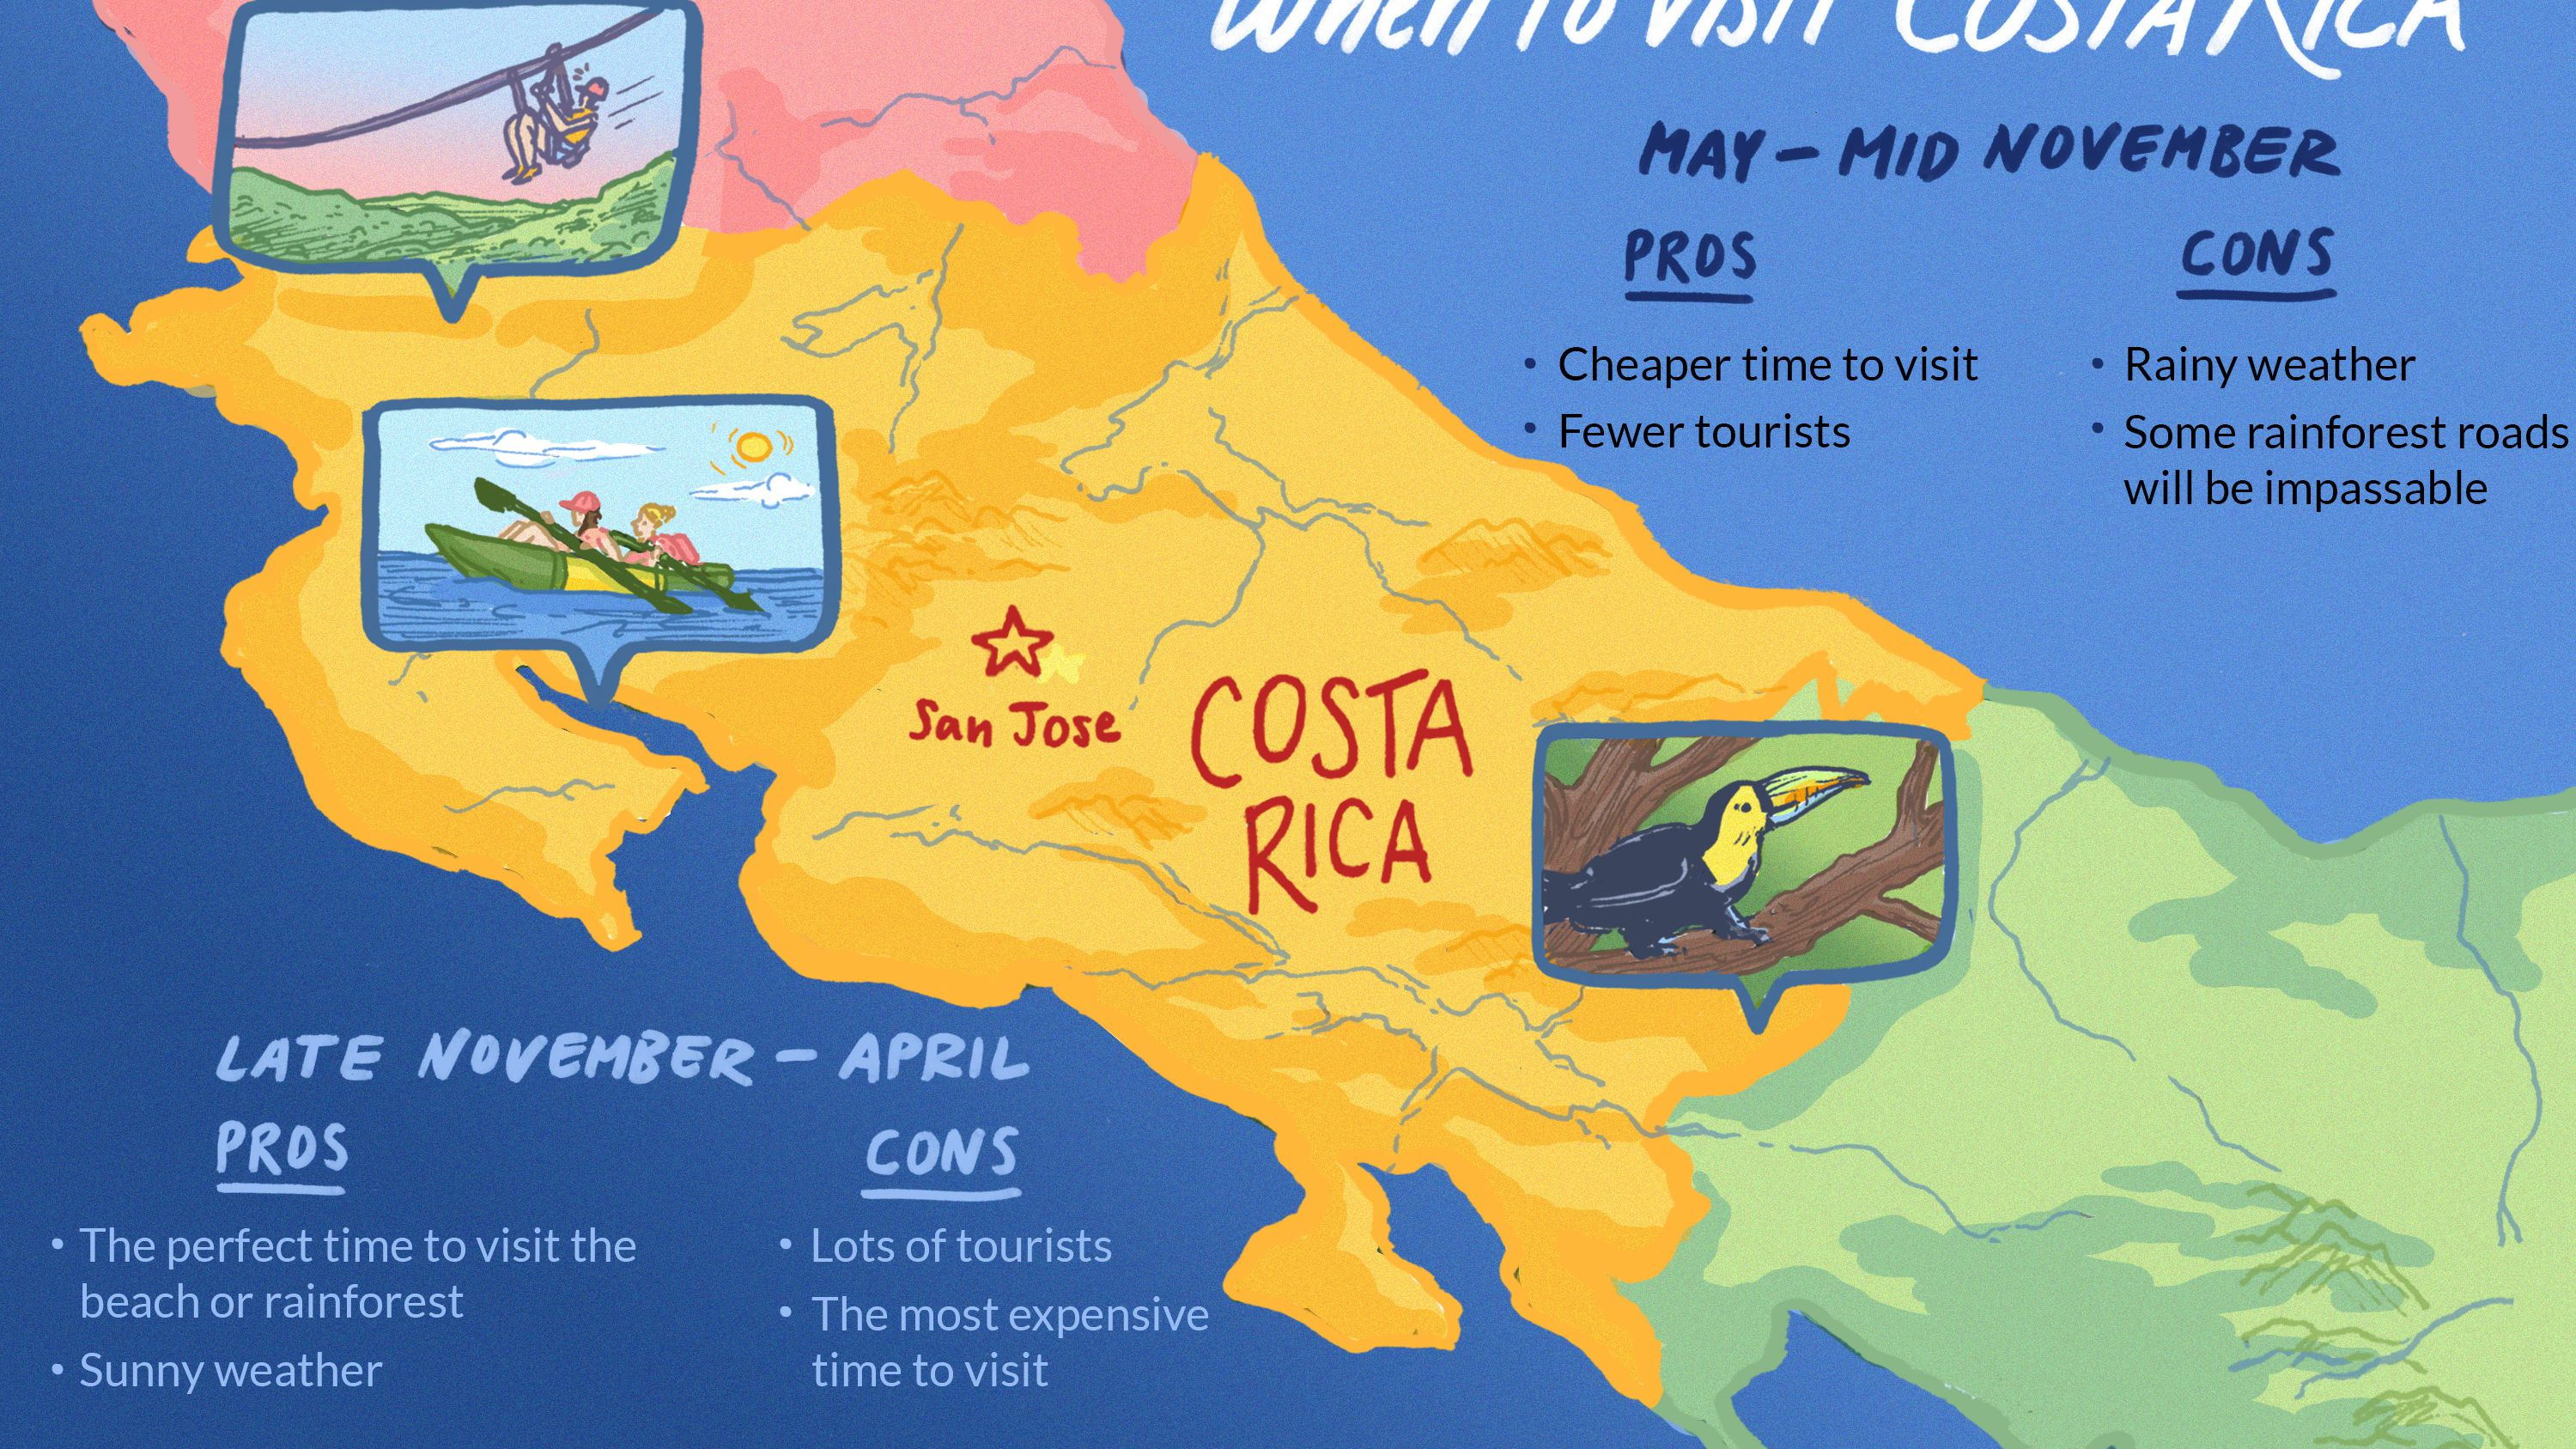 costa rica rainy season map The Best Time To Visit Costa Rica costa rica rainy season map